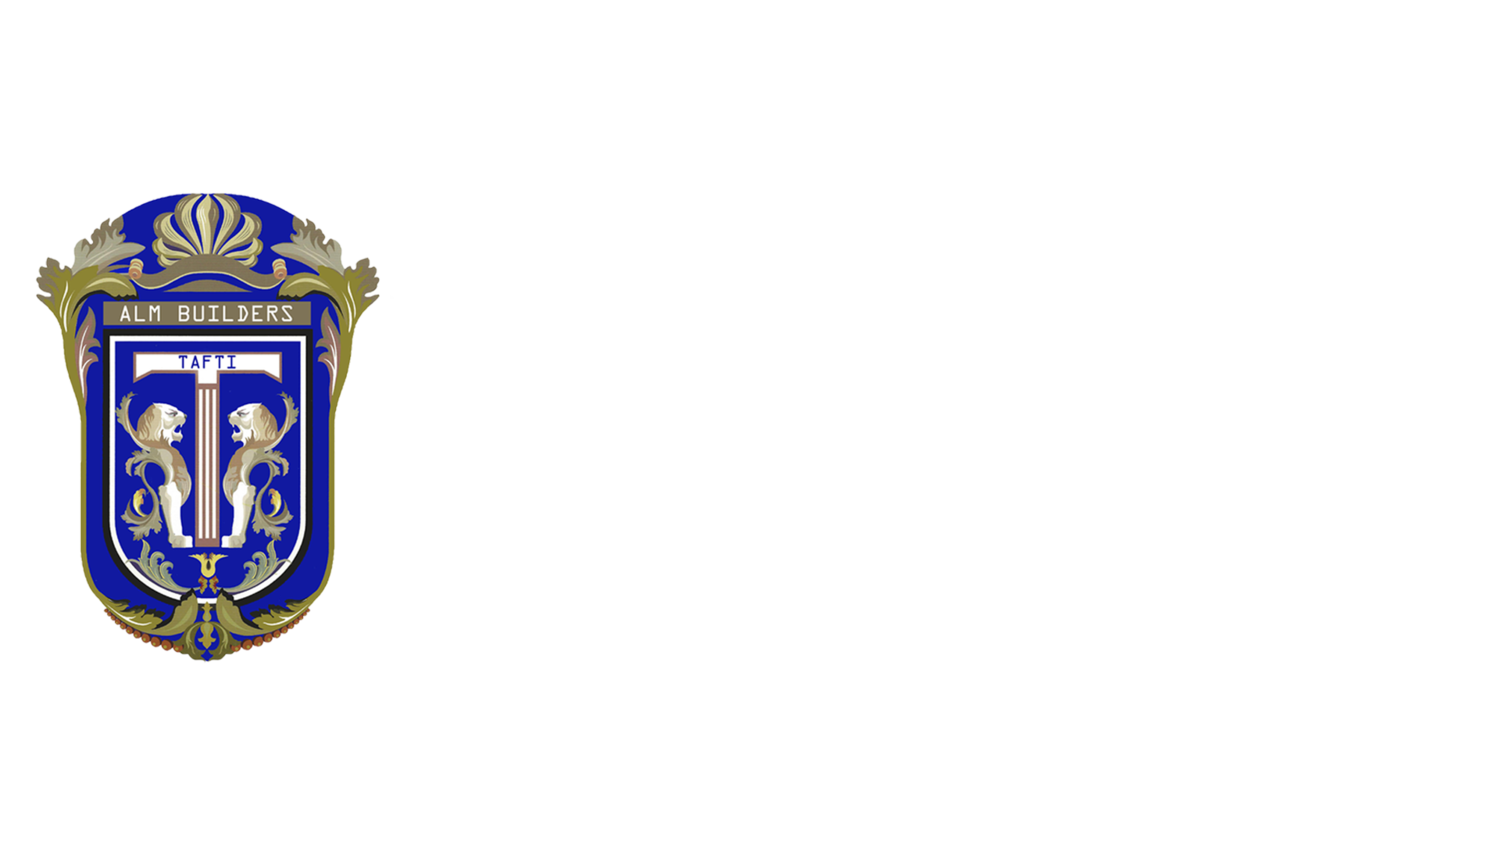 almbuilders